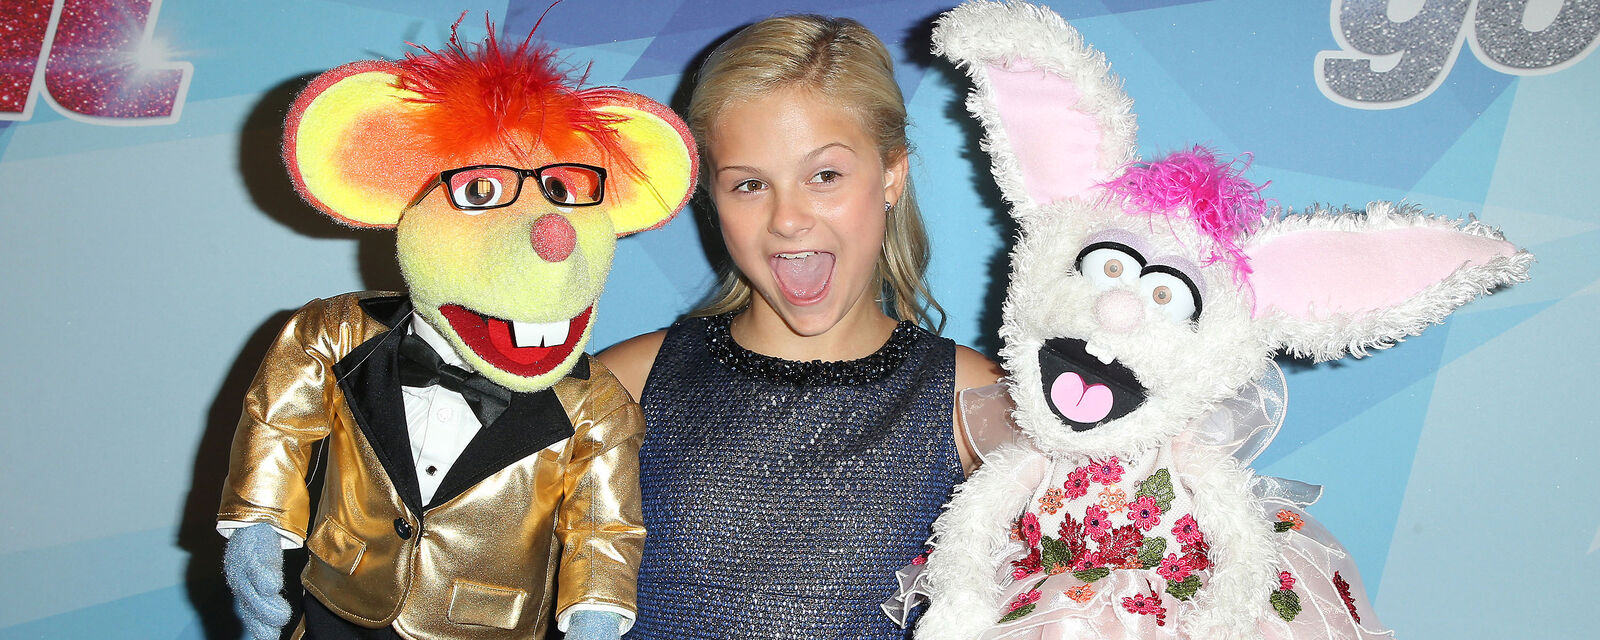 Darci Lynne Tickets (Rescheduled from October 14, 2018)